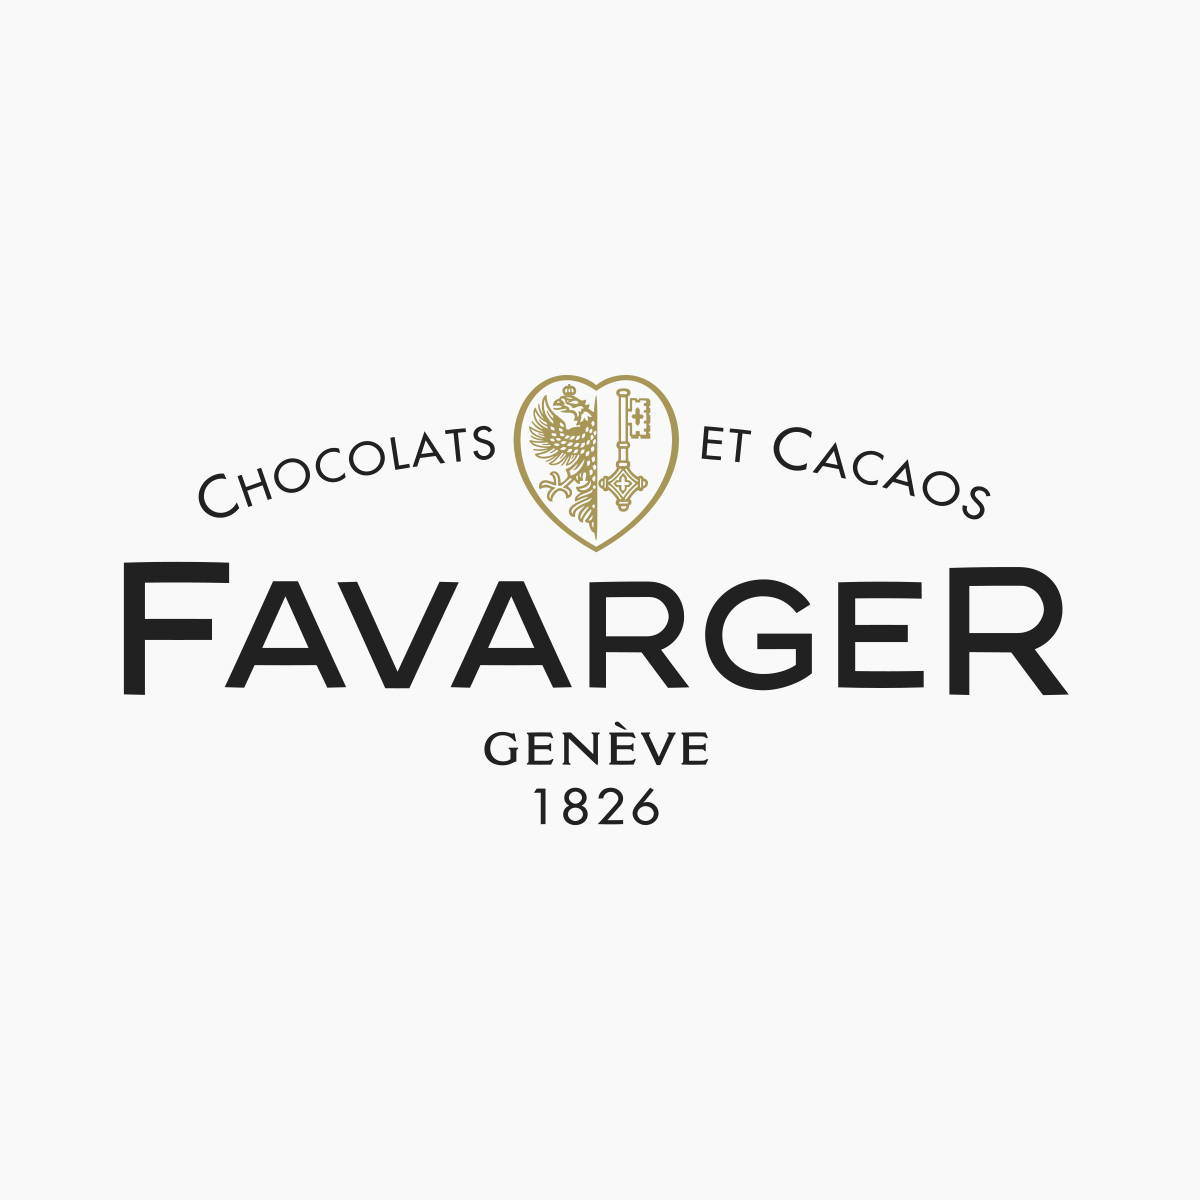 Bäder Celle Favarger Refontes Marques Et Packaging Bader Creation